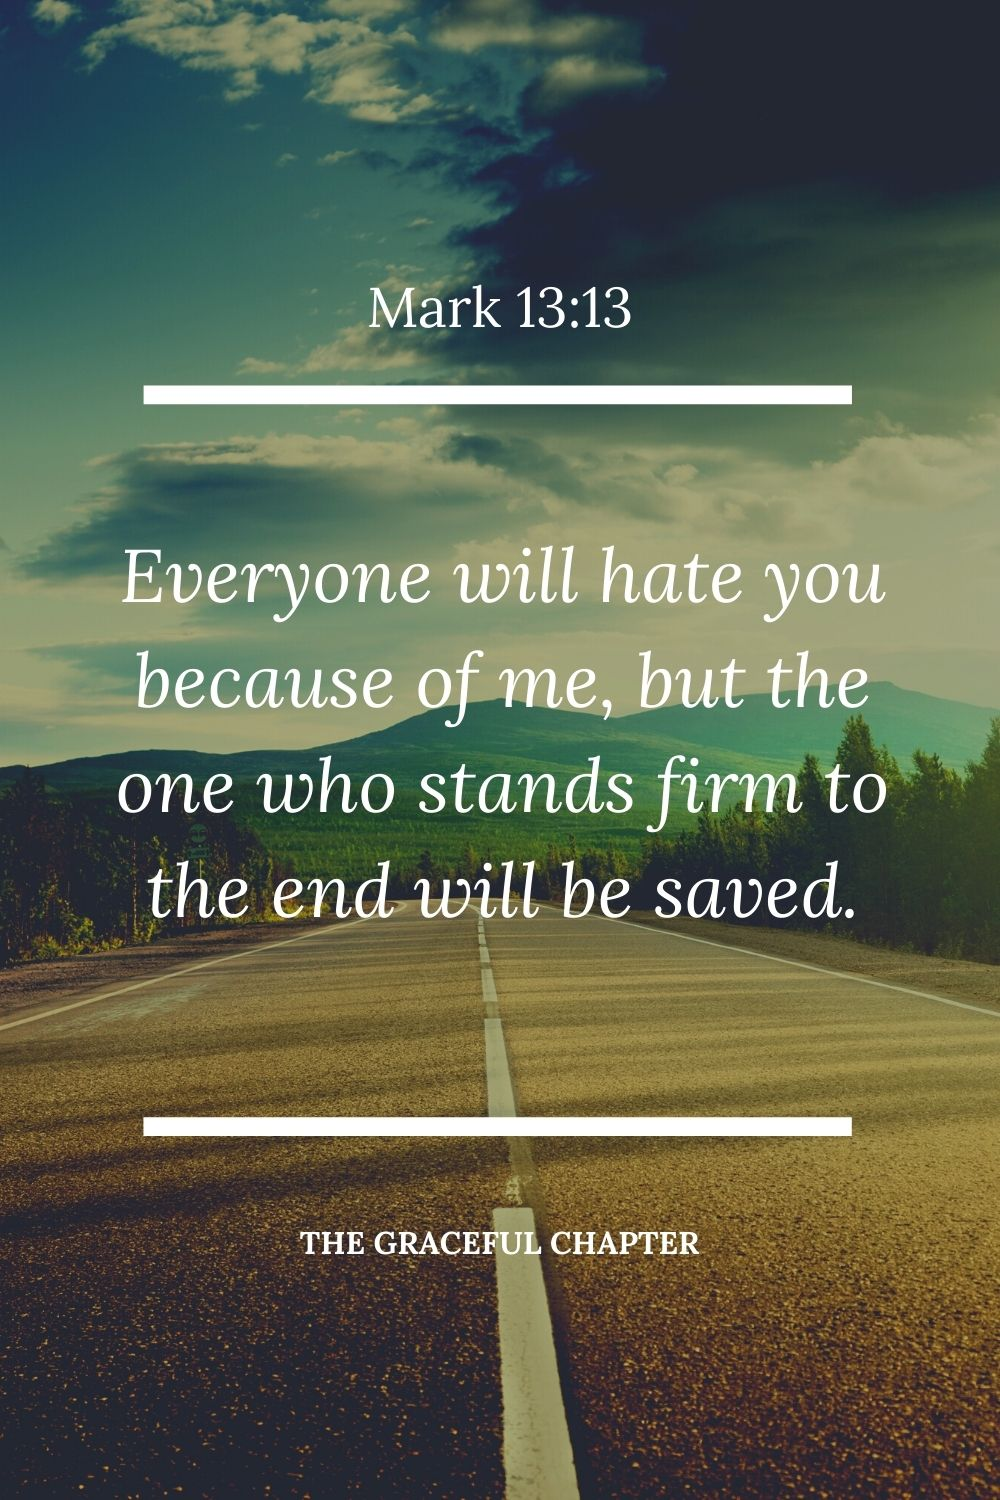 Everyone will hate you because of me, but the one who stands firm to the end will be saved. Mark 13:13